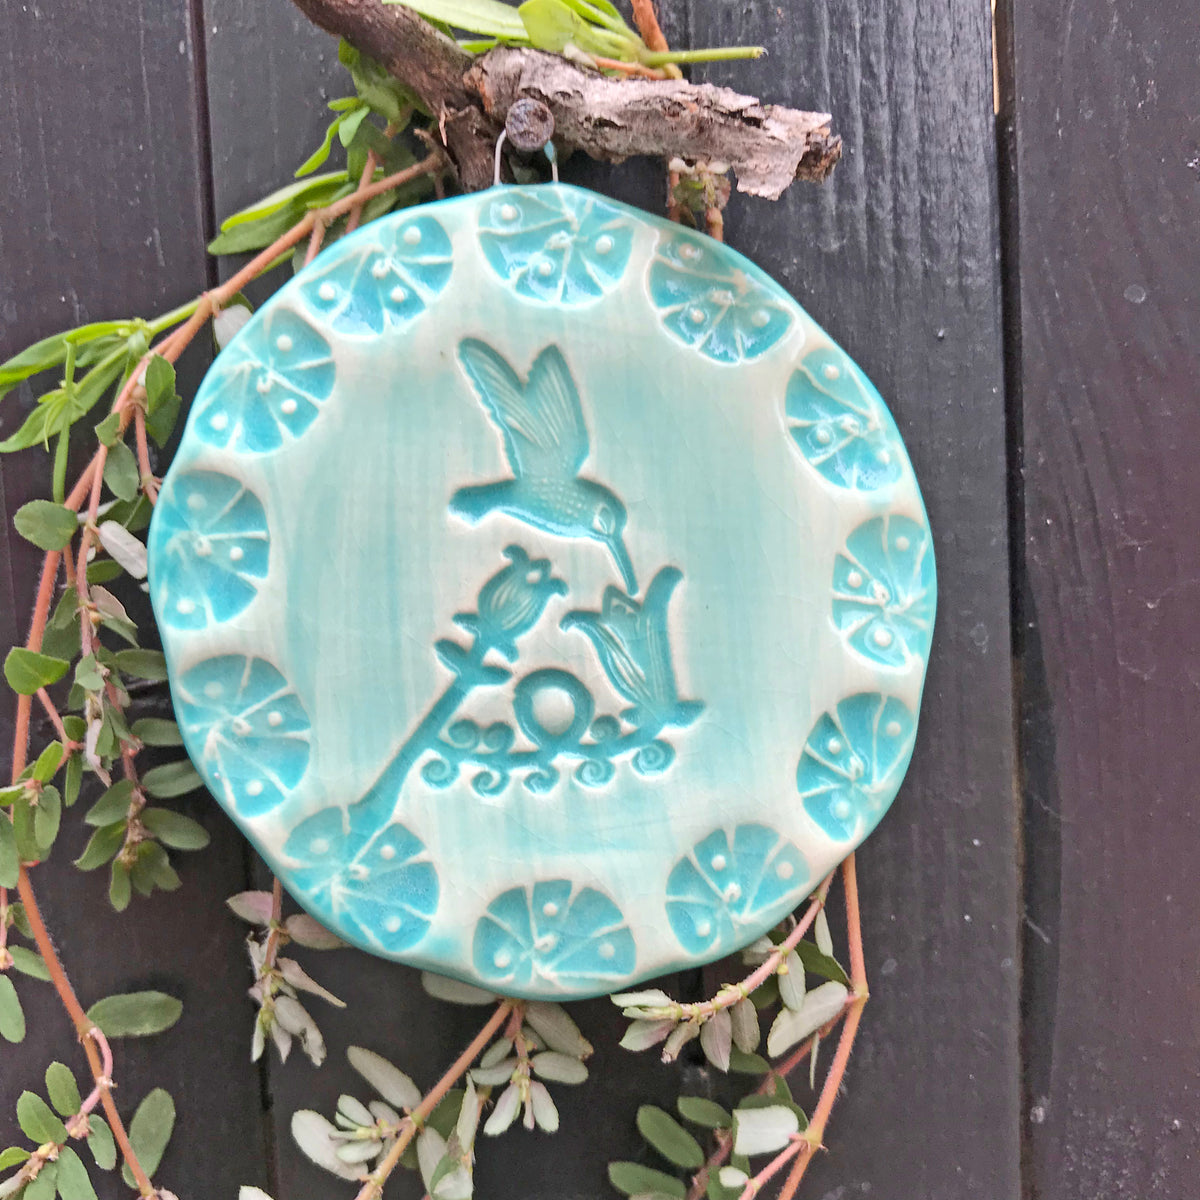 Hummingbird Ornament, handmade by Oerth Studio artisans and glazed in rich turquoise color.